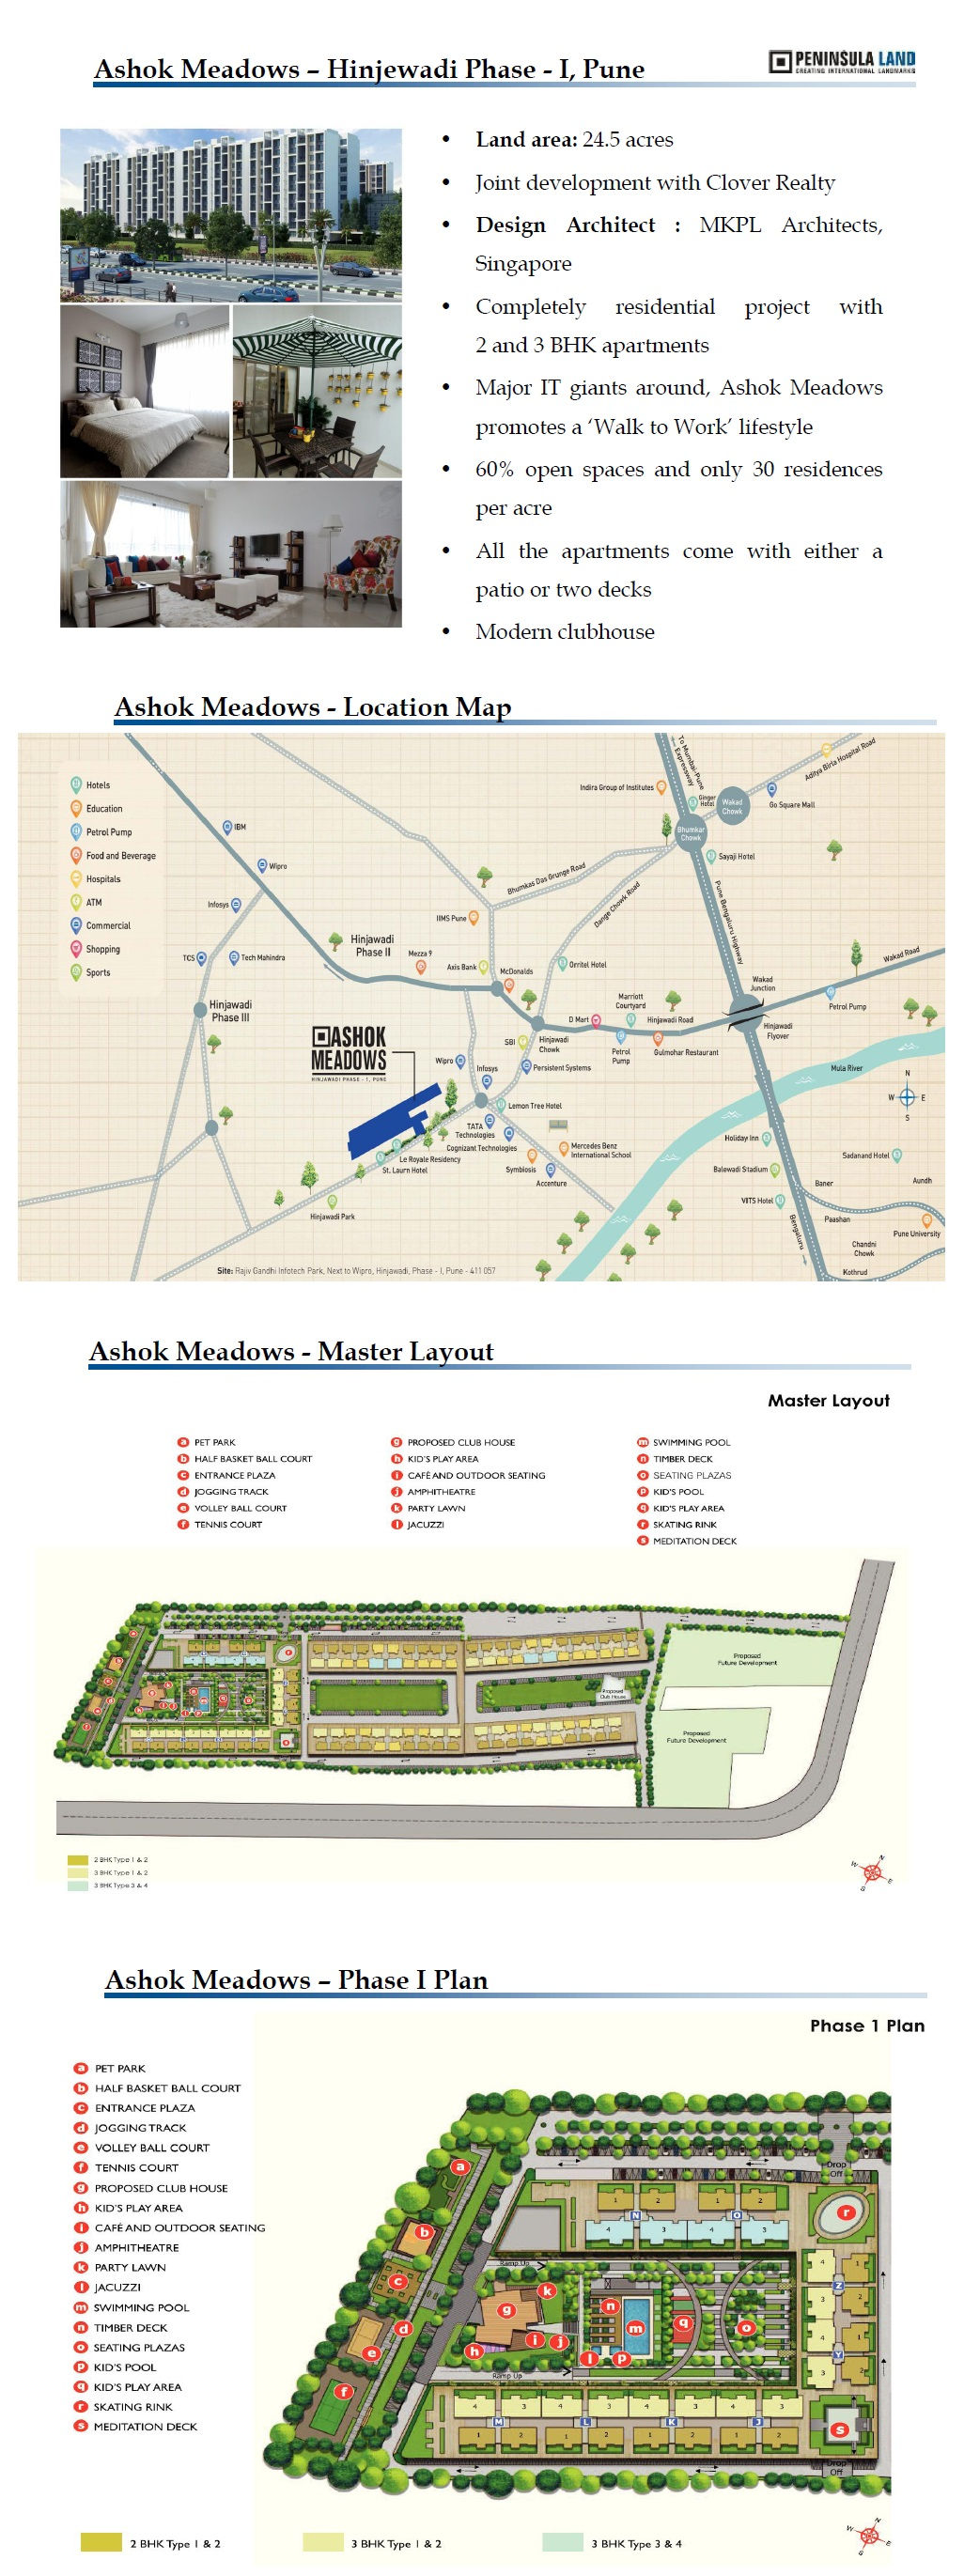 Peninsula Ashok Meadows Pune